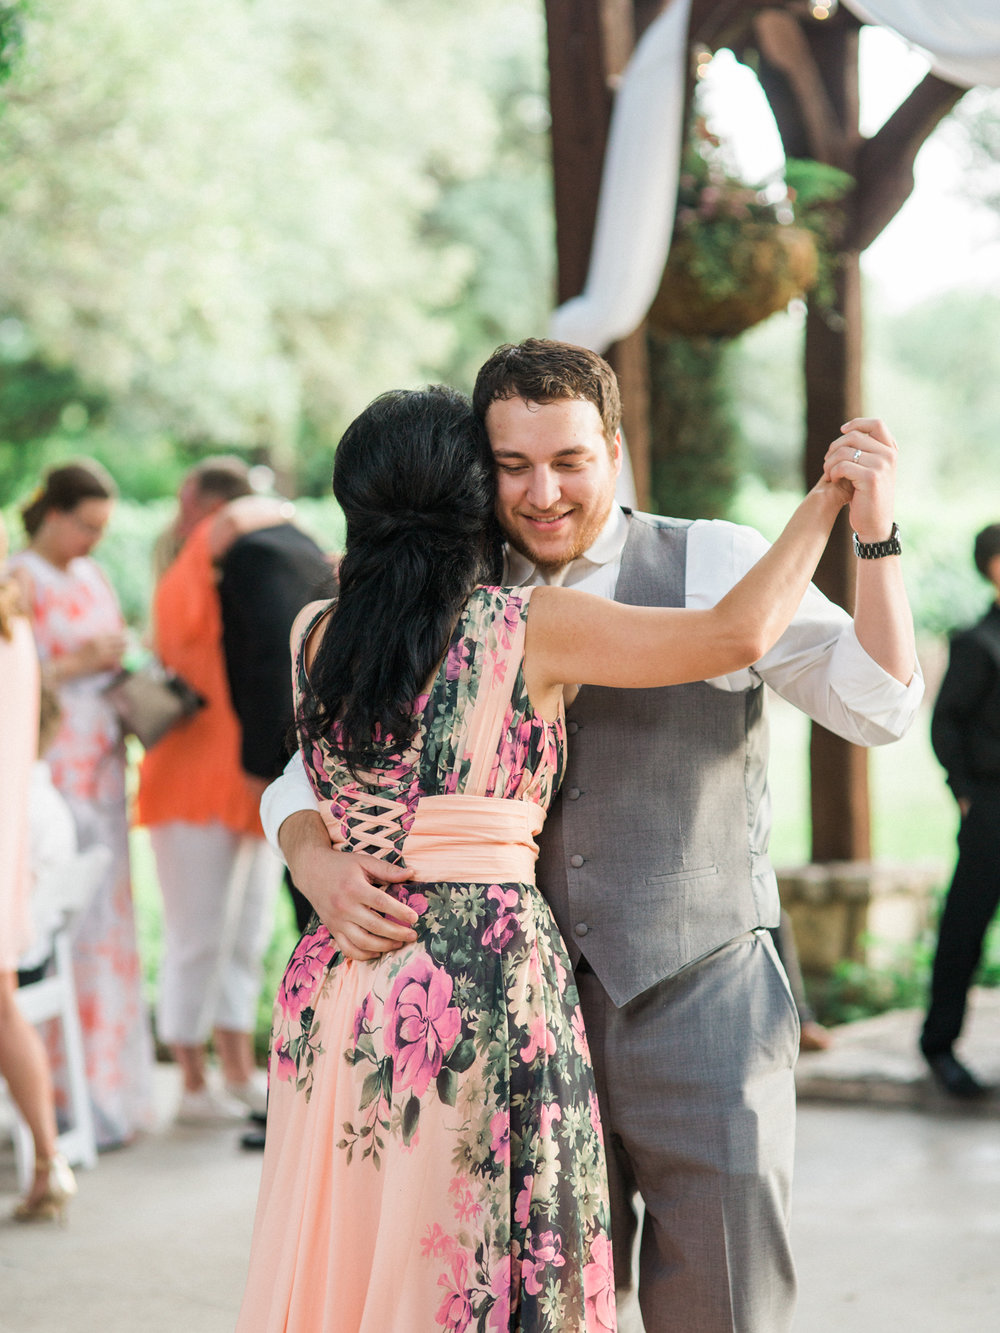 Elegant Spring Vineyard Wedding | Film Wedding Photographer | Austin Wedding Photographer | The Sweetest Mother Son Wedding Dance | Britni Dean Photography // britnidean.com